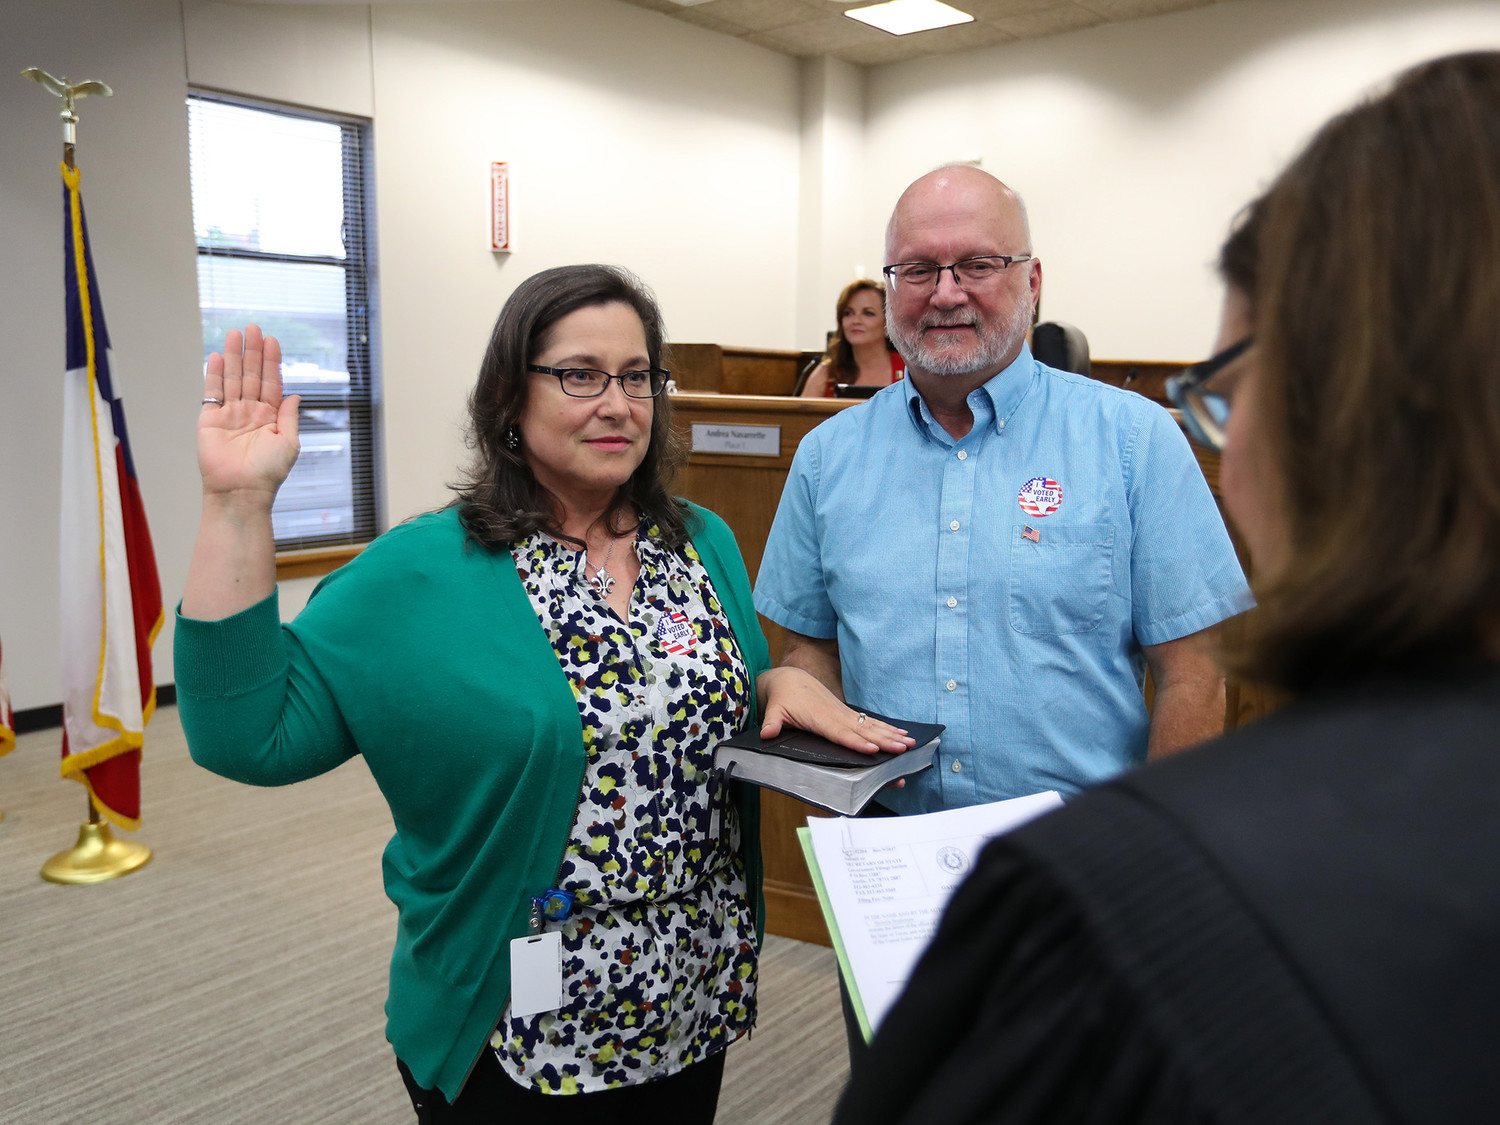 Council member, Place 2, Michelle Stephenson was sworn in during last Thursday's Leander City Council Meeting.